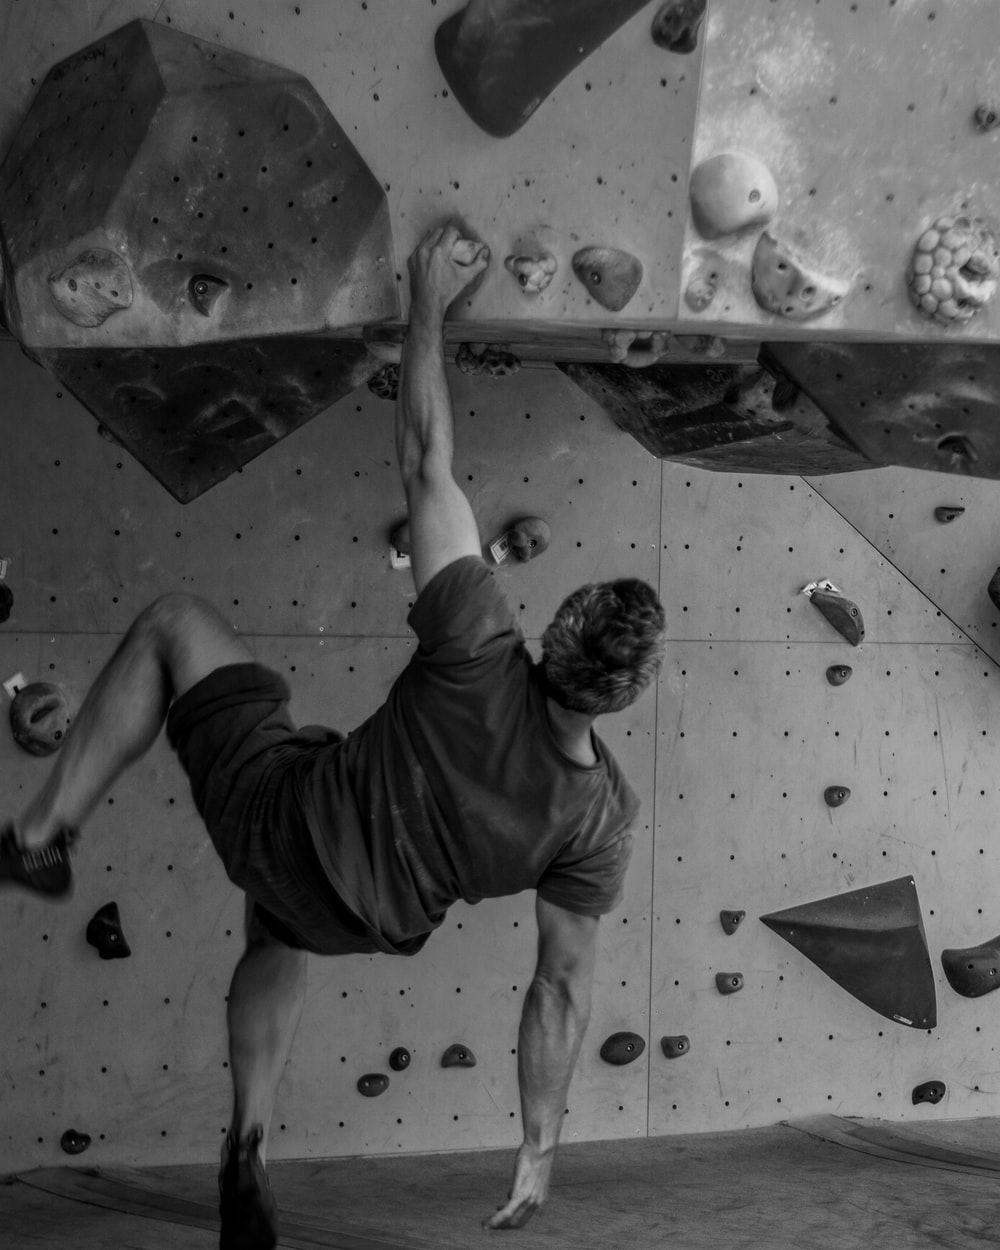 grayscale photo of man in t-shirt and shorts climbing on wall